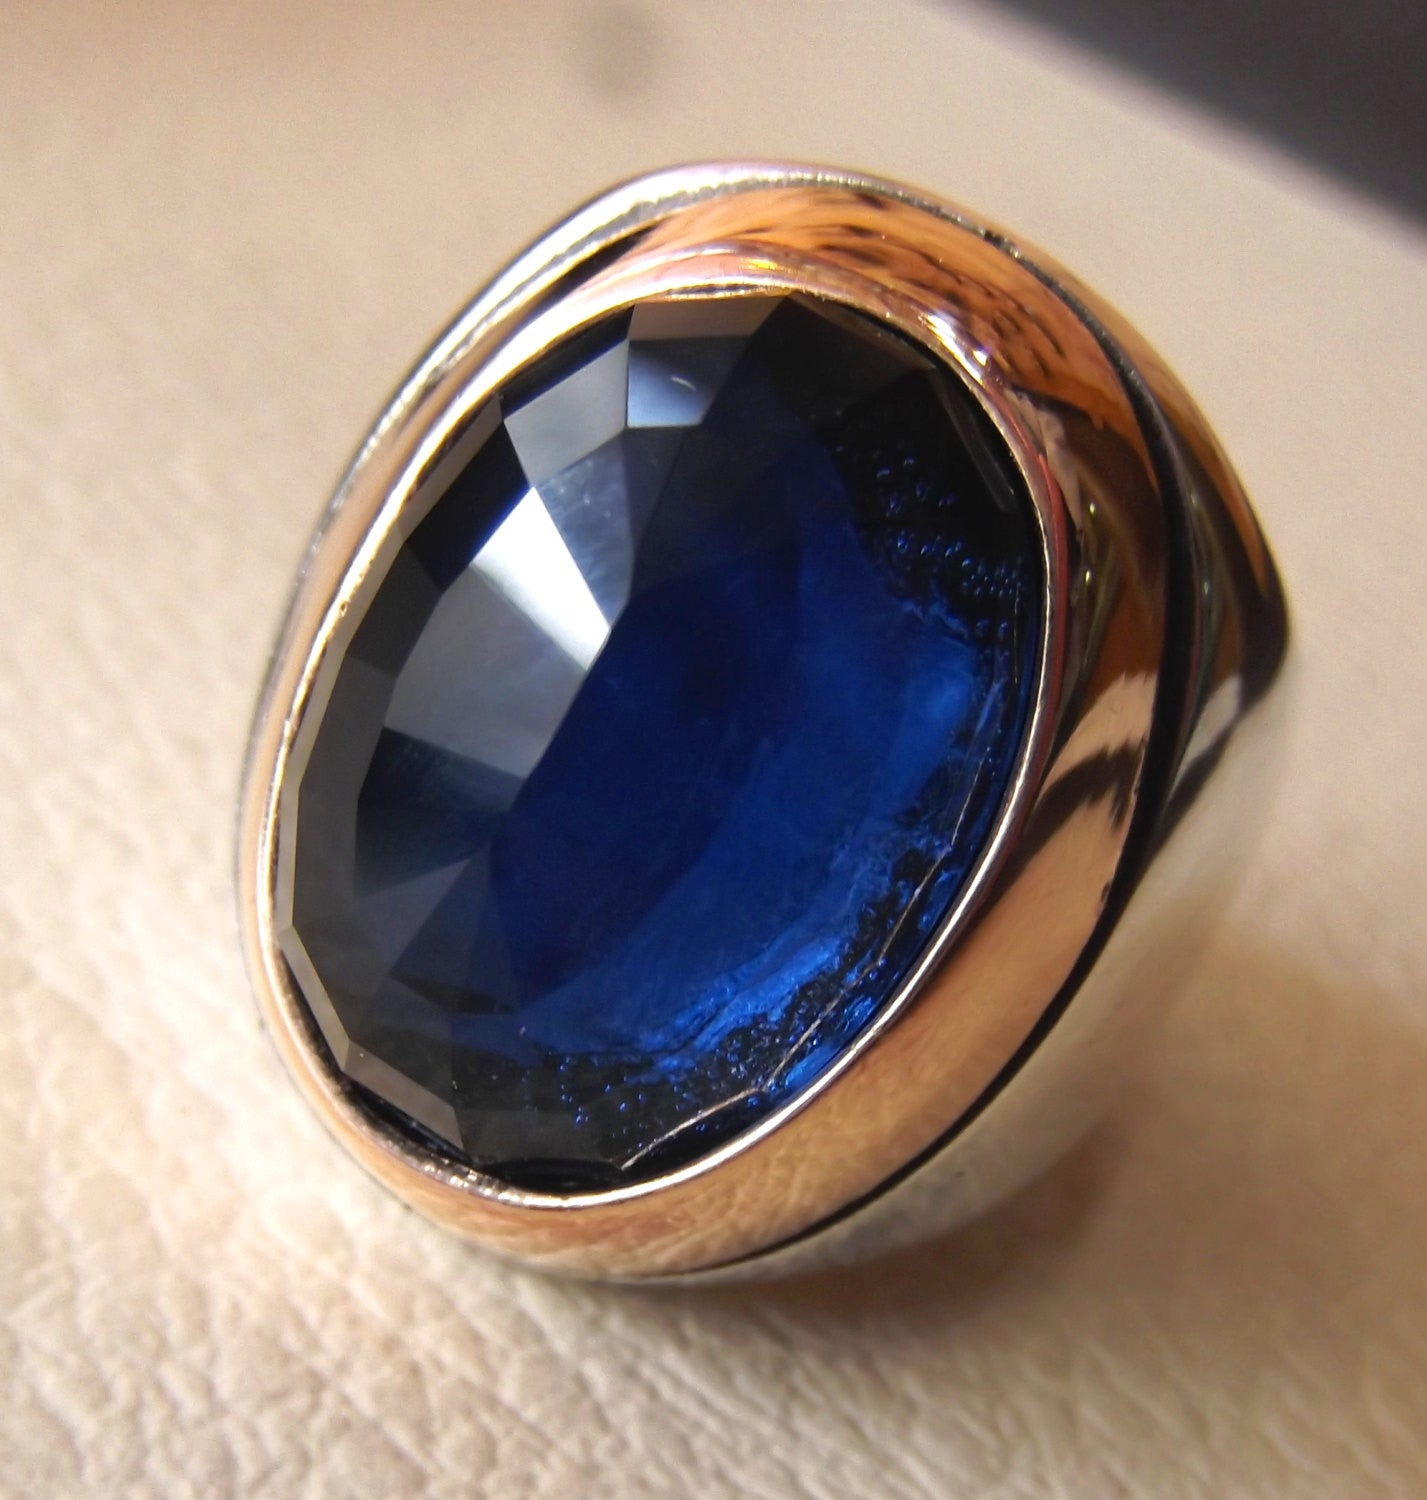 sapphire synthetic imitation stone huge heavy ring dark blue faceted gem sterling silver 925 and bronze all sizes fast shipping jewelry